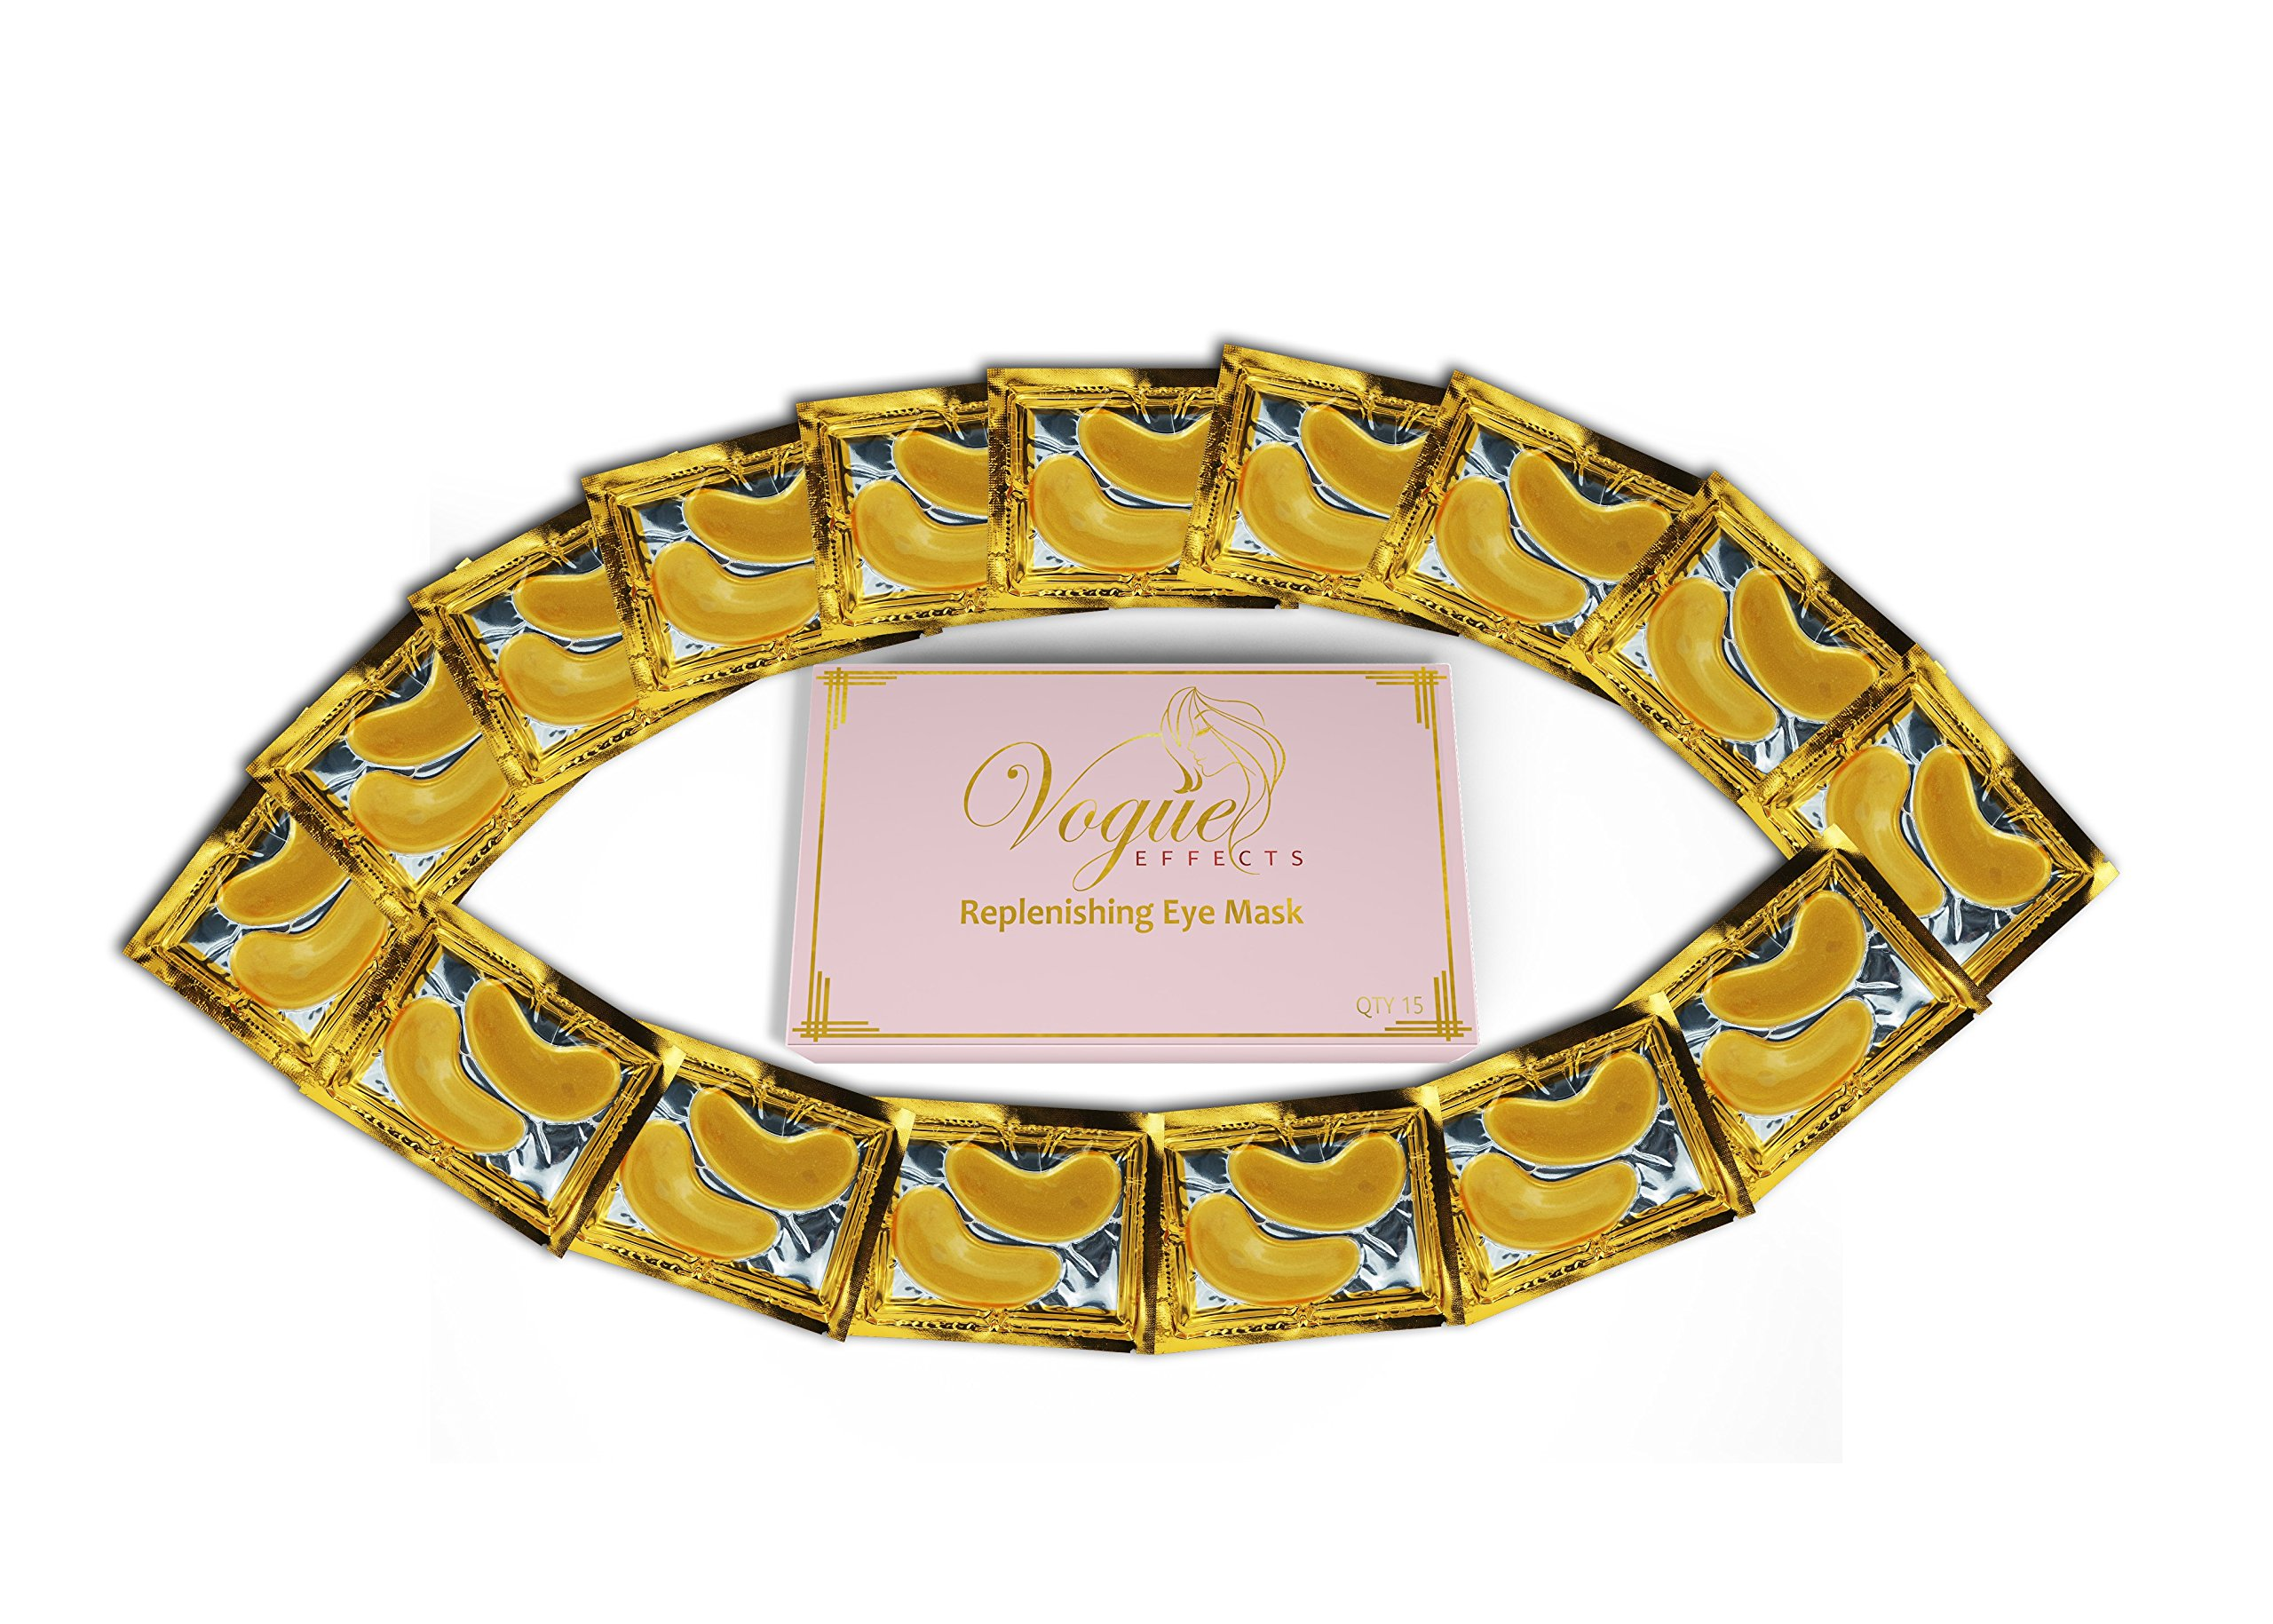 24k Gold Eye Mask - with Collagen by Vogue Effects (15 Pairs), Hyaluronic Acid Treatment for Puffy Eyes, Dark Circles Corrector, Used for Under Eye Bags, Anti Aging Mask Gift